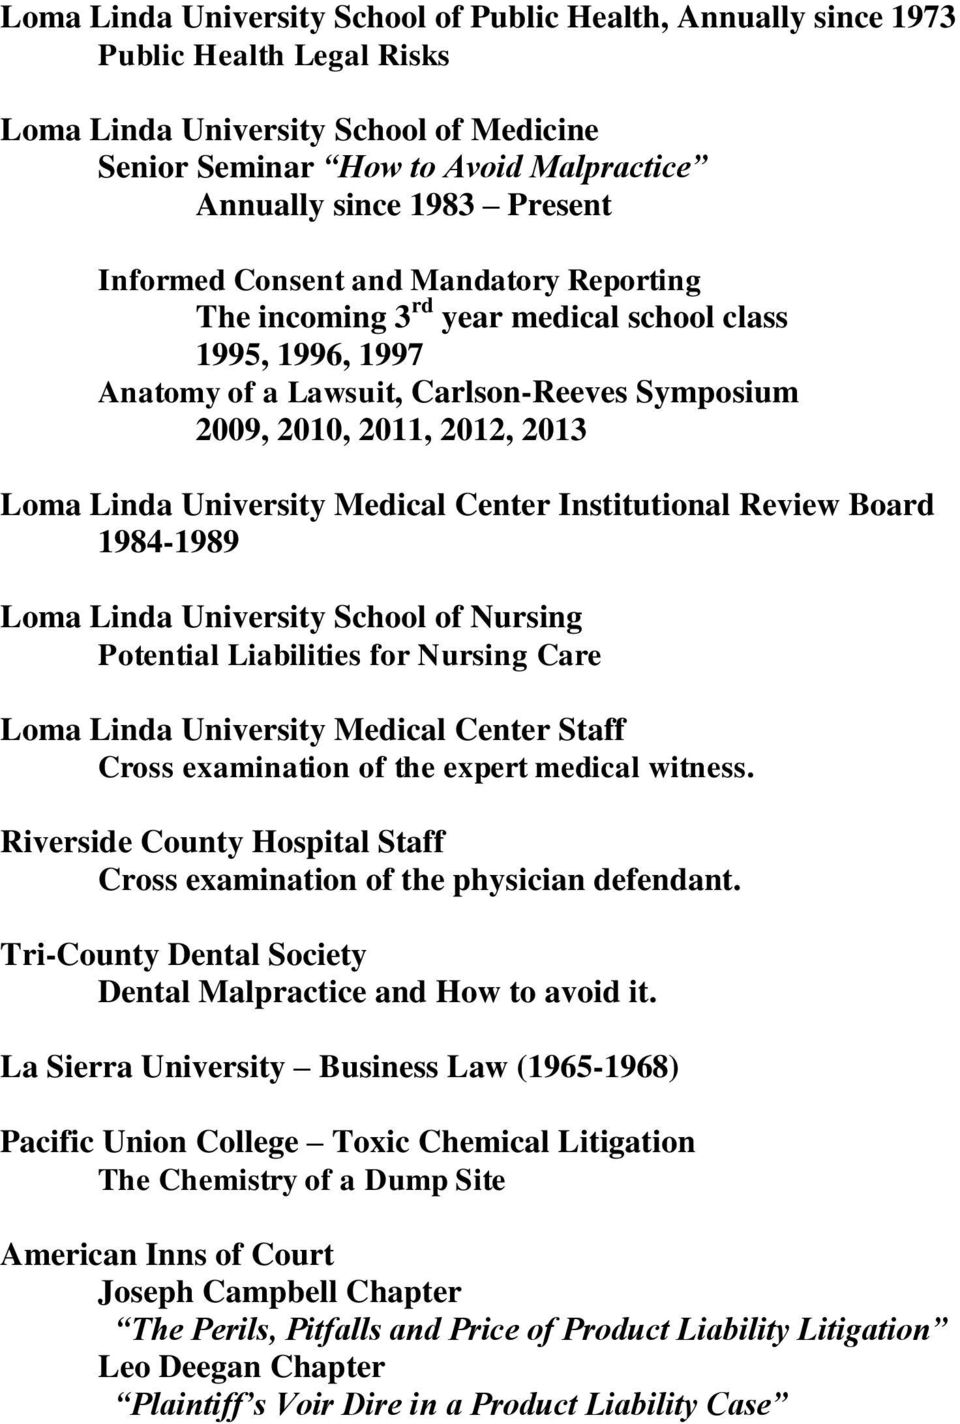 University Medical Center Institutional Review Board 1984-1989 Loma Linda University School of Nursing Potential Liabilities for Nursing Care Loma Linda University Medical Center Staff Cross